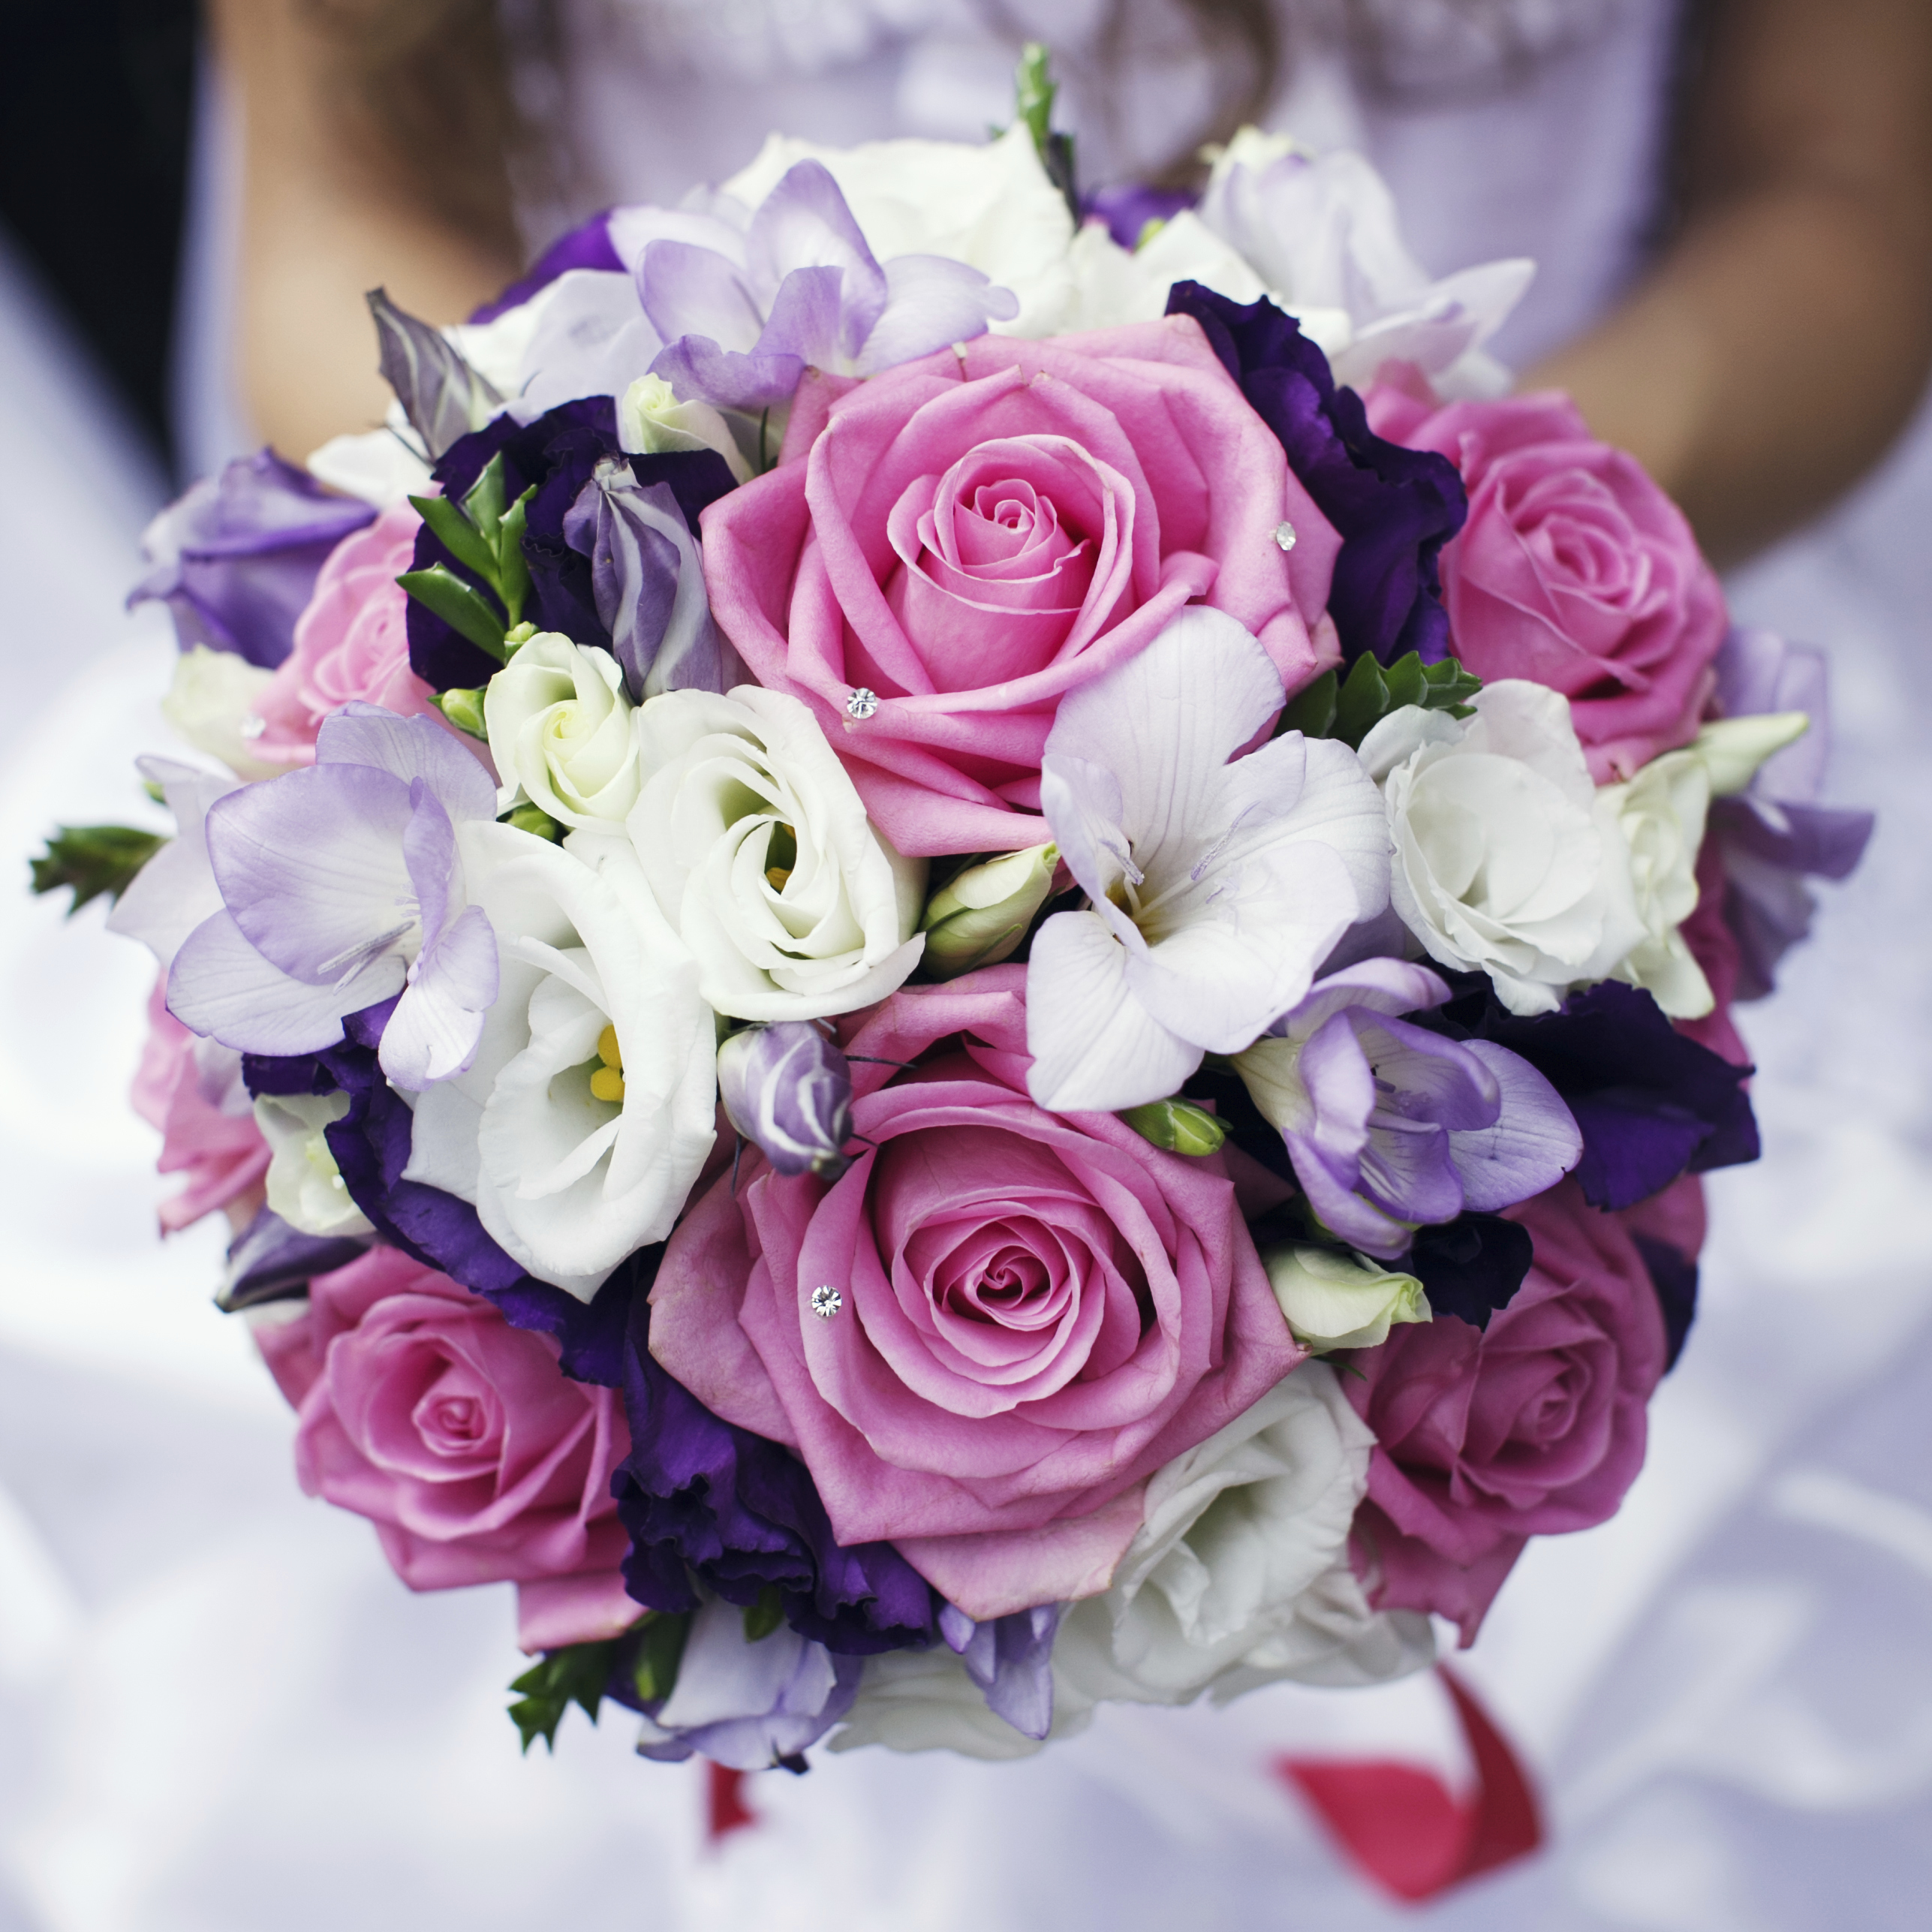 Wedding Bouquets Articles Easy Weddings